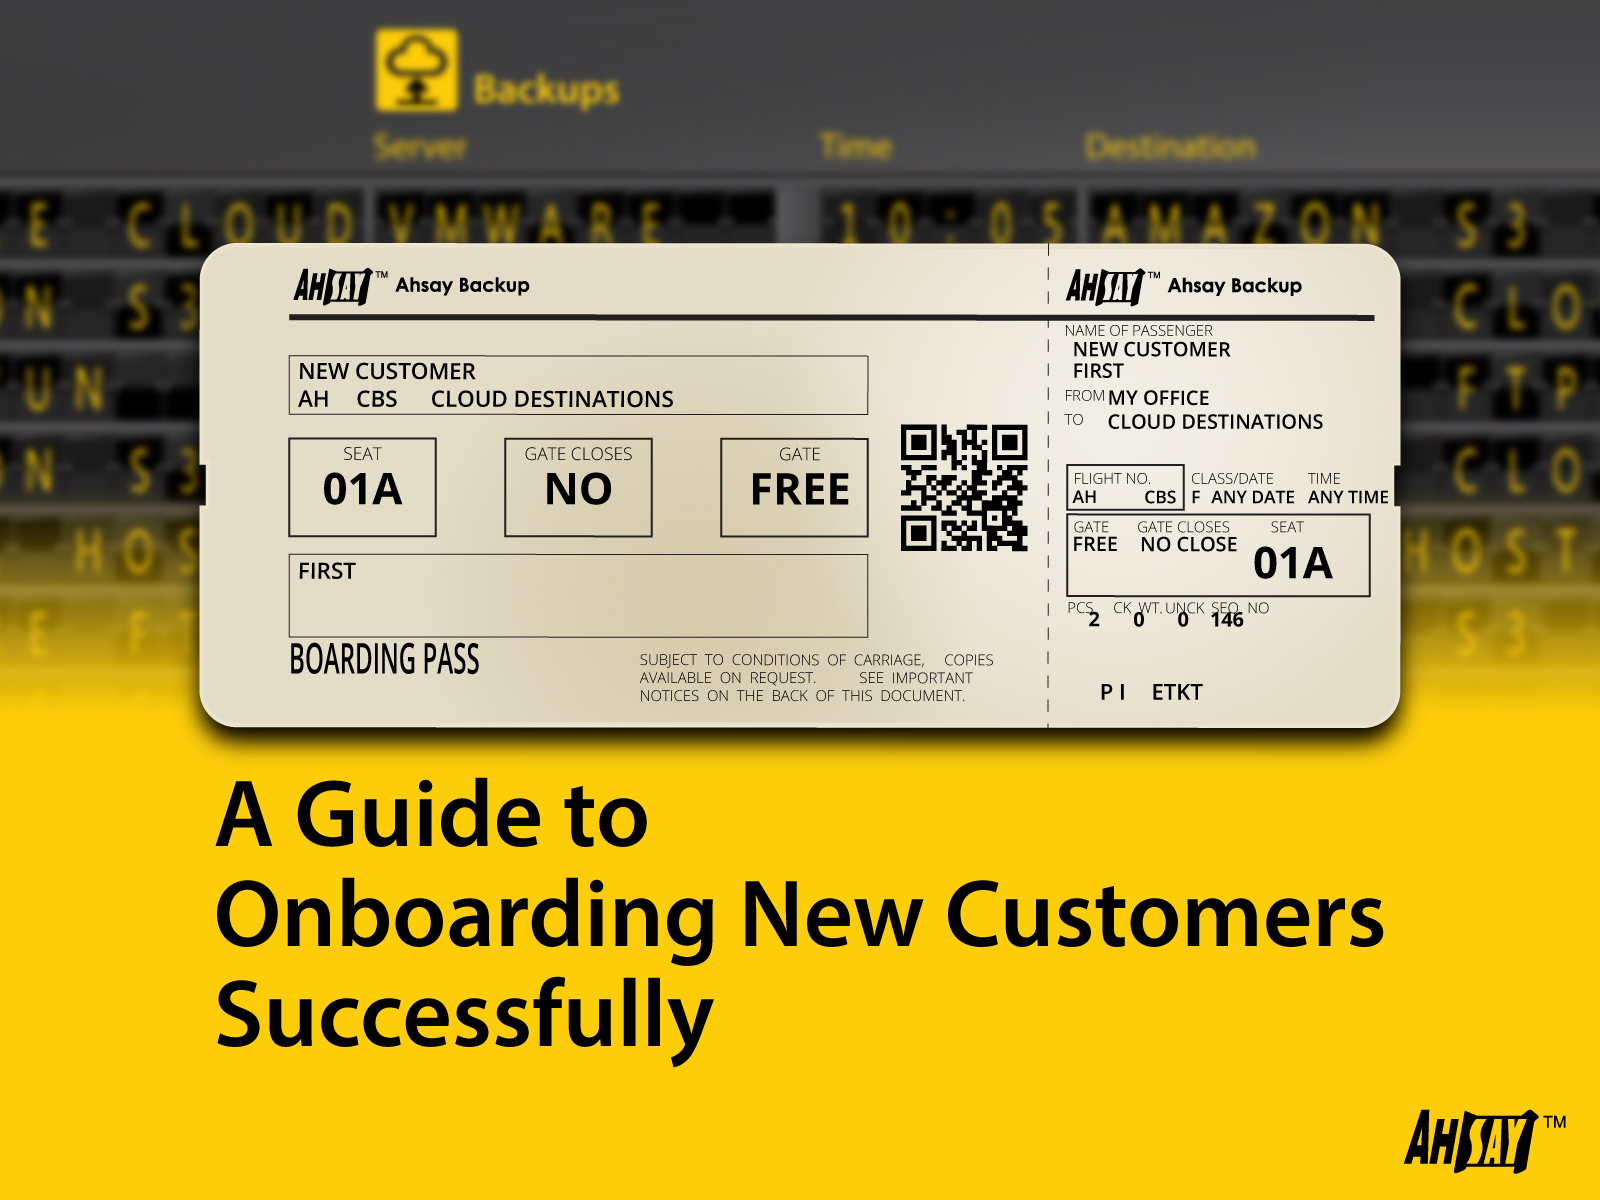 A-Guide-to-Onboarding-New-Customers-Successfully